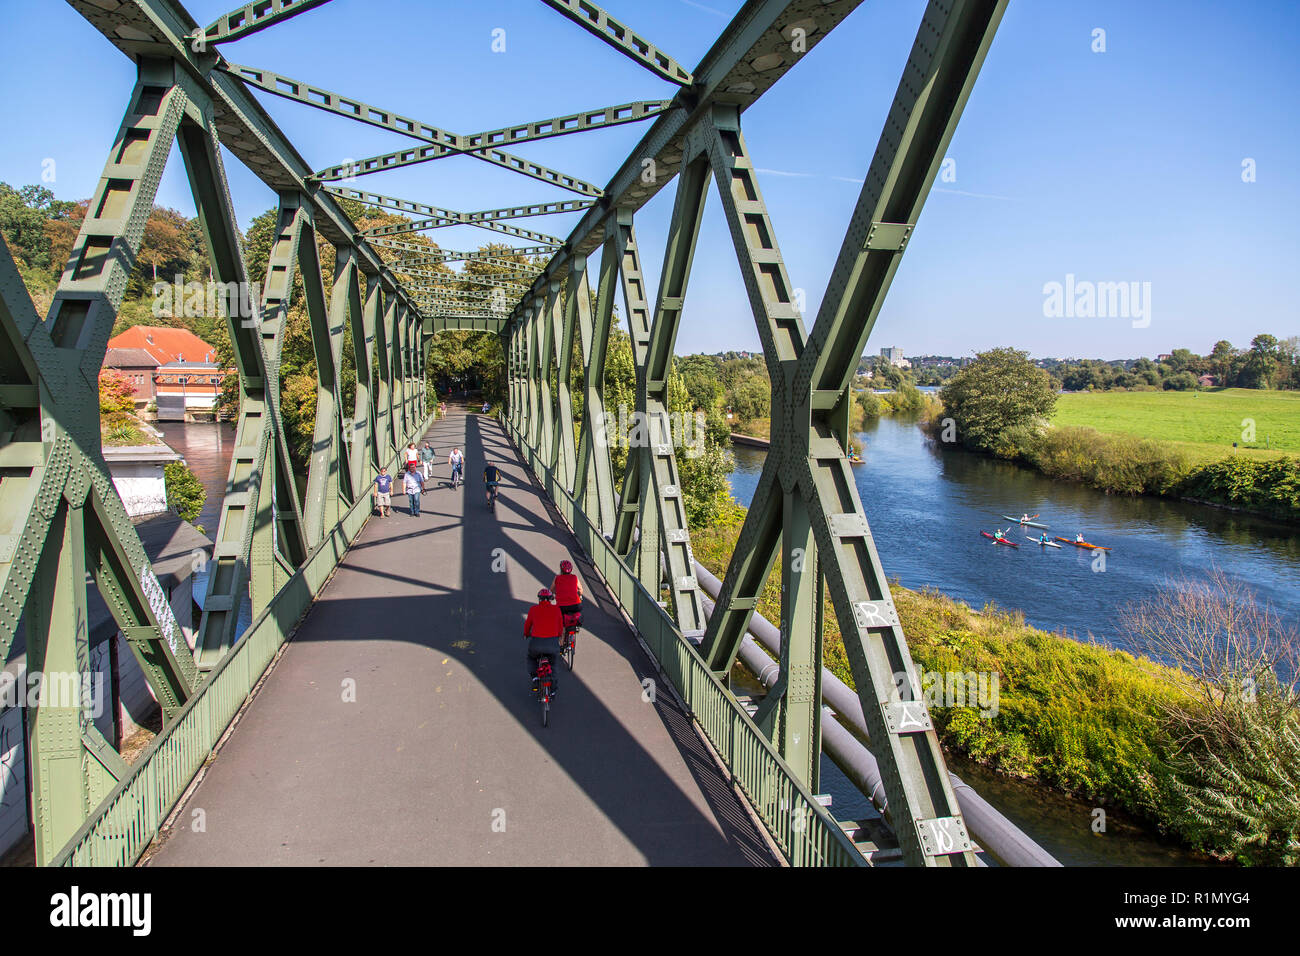 Ruhrtalradweg, Ruhr Valley Cycle Path, former railway bridge over the Ruhr, in Essen, cycle and pedestrian path,Germany - Stock Image